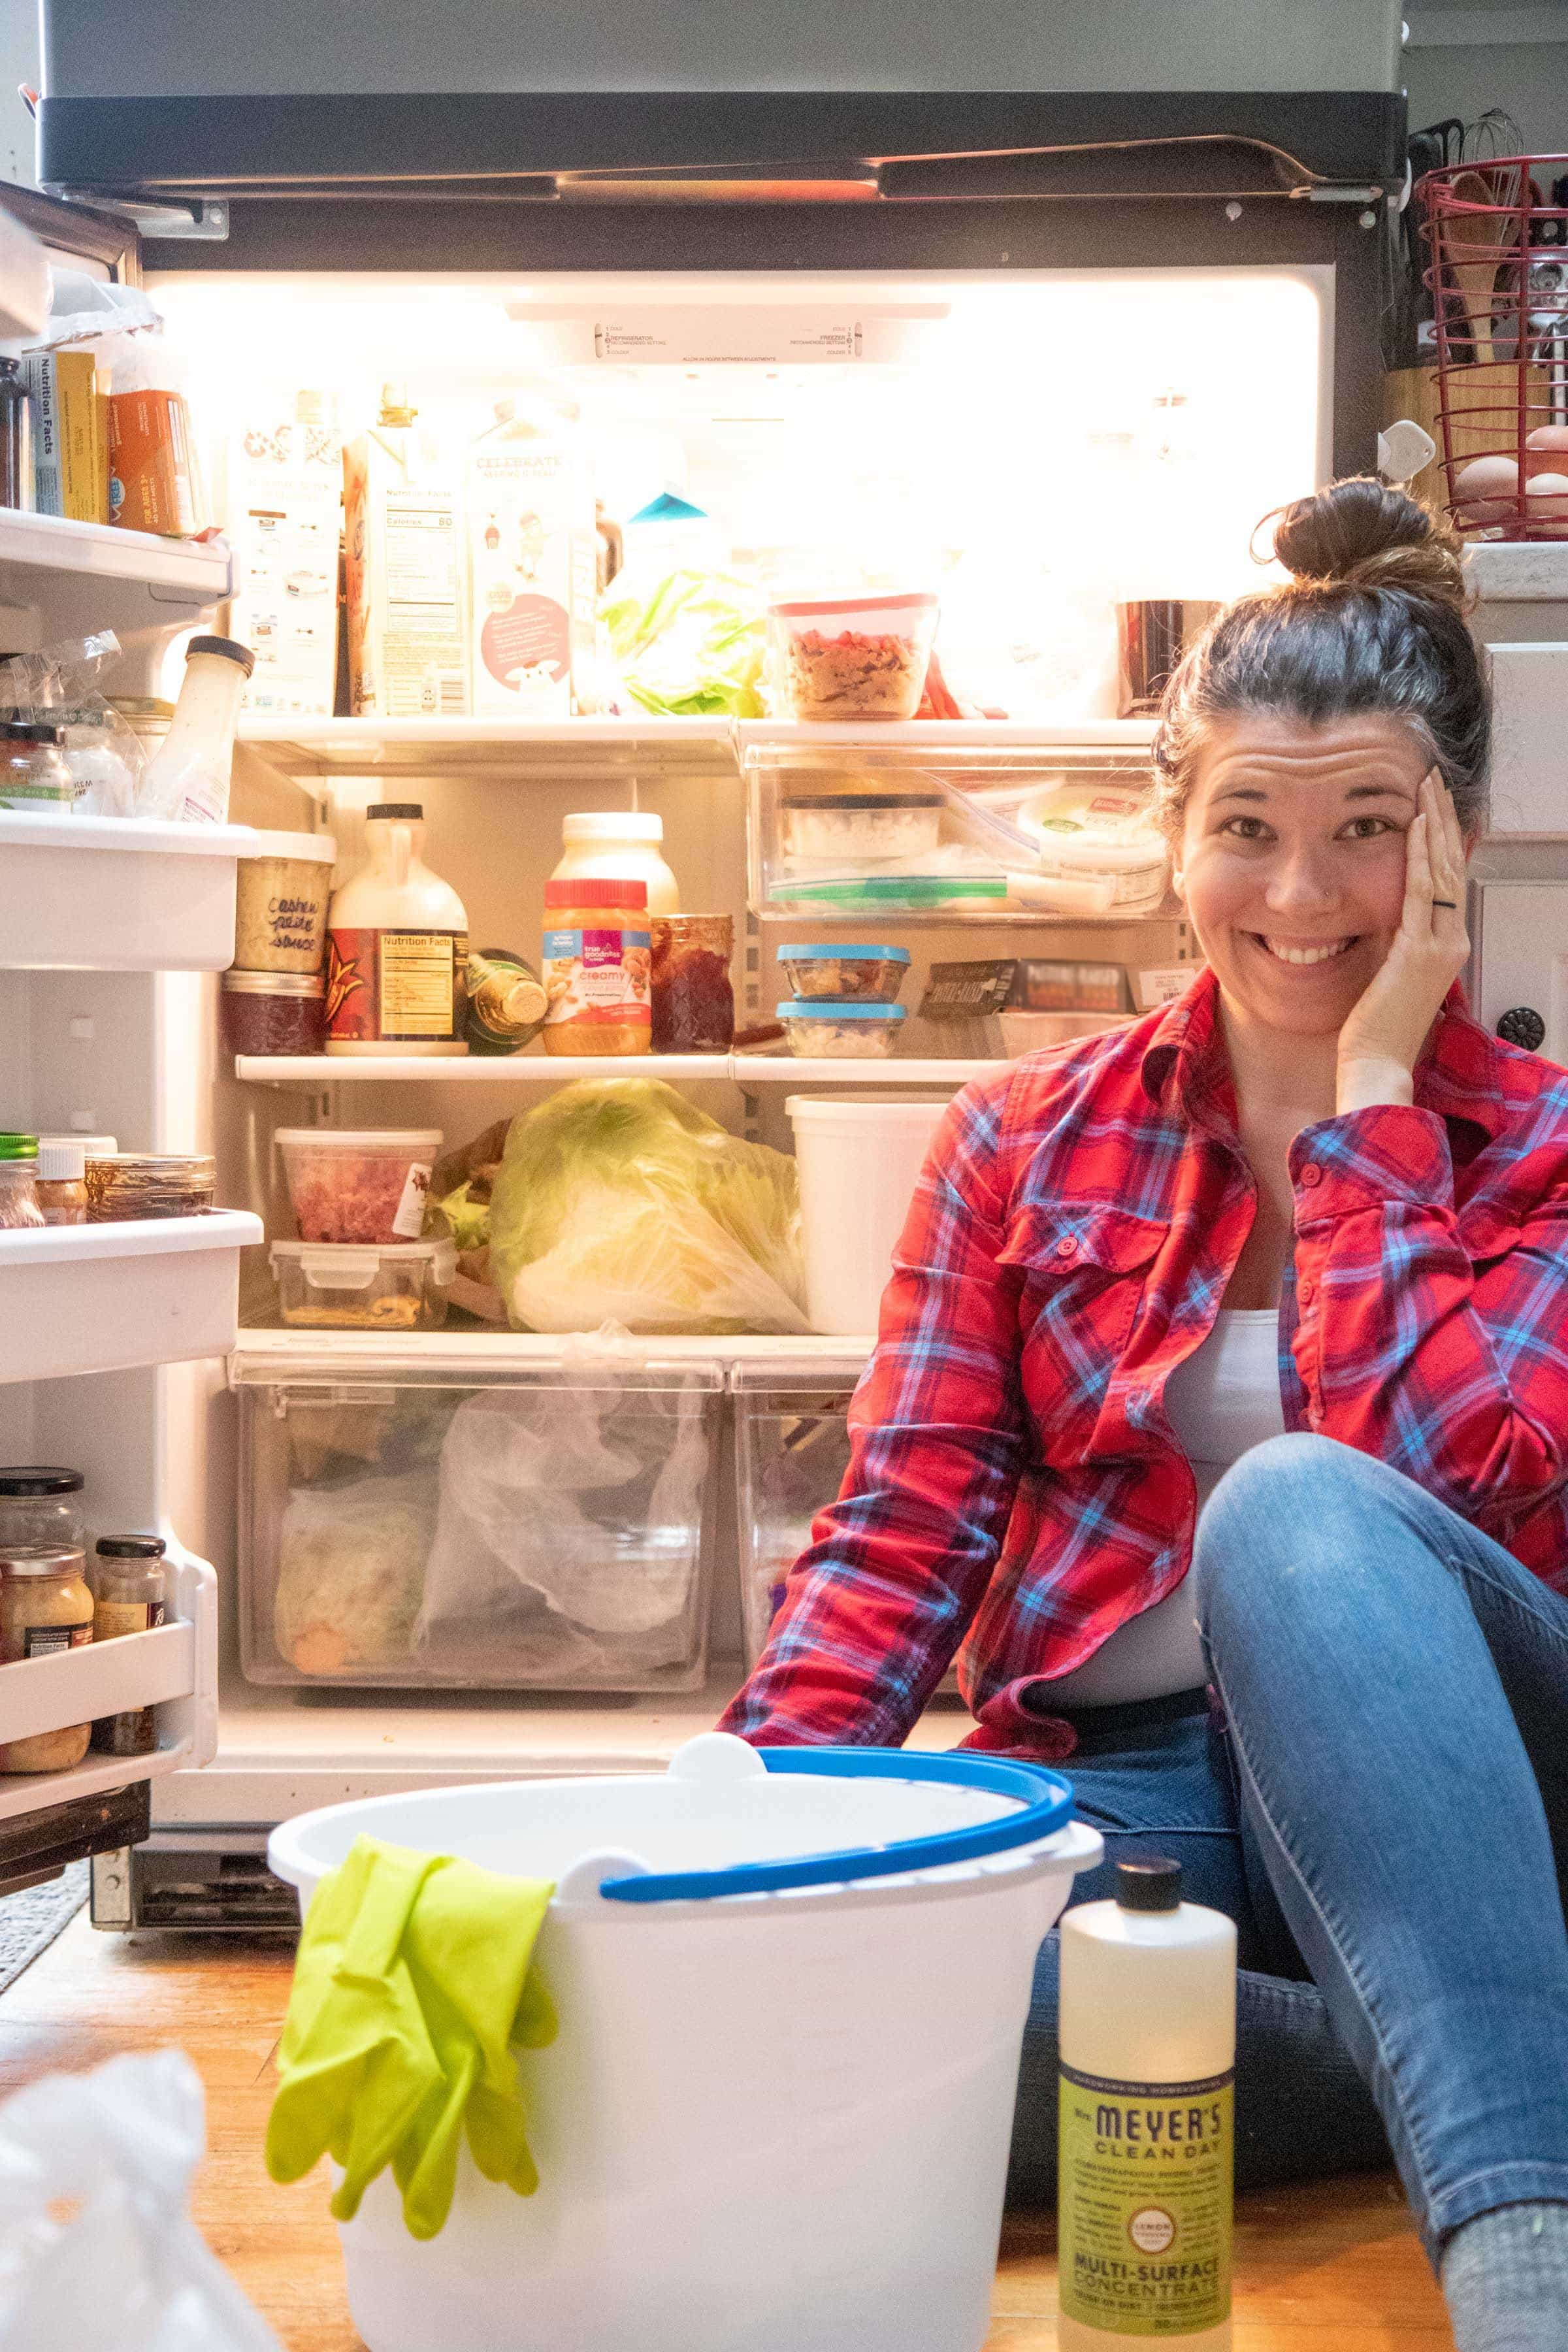 Brunette woman sitting in front of an open fridge with a mop bucket and bottle of cleaner